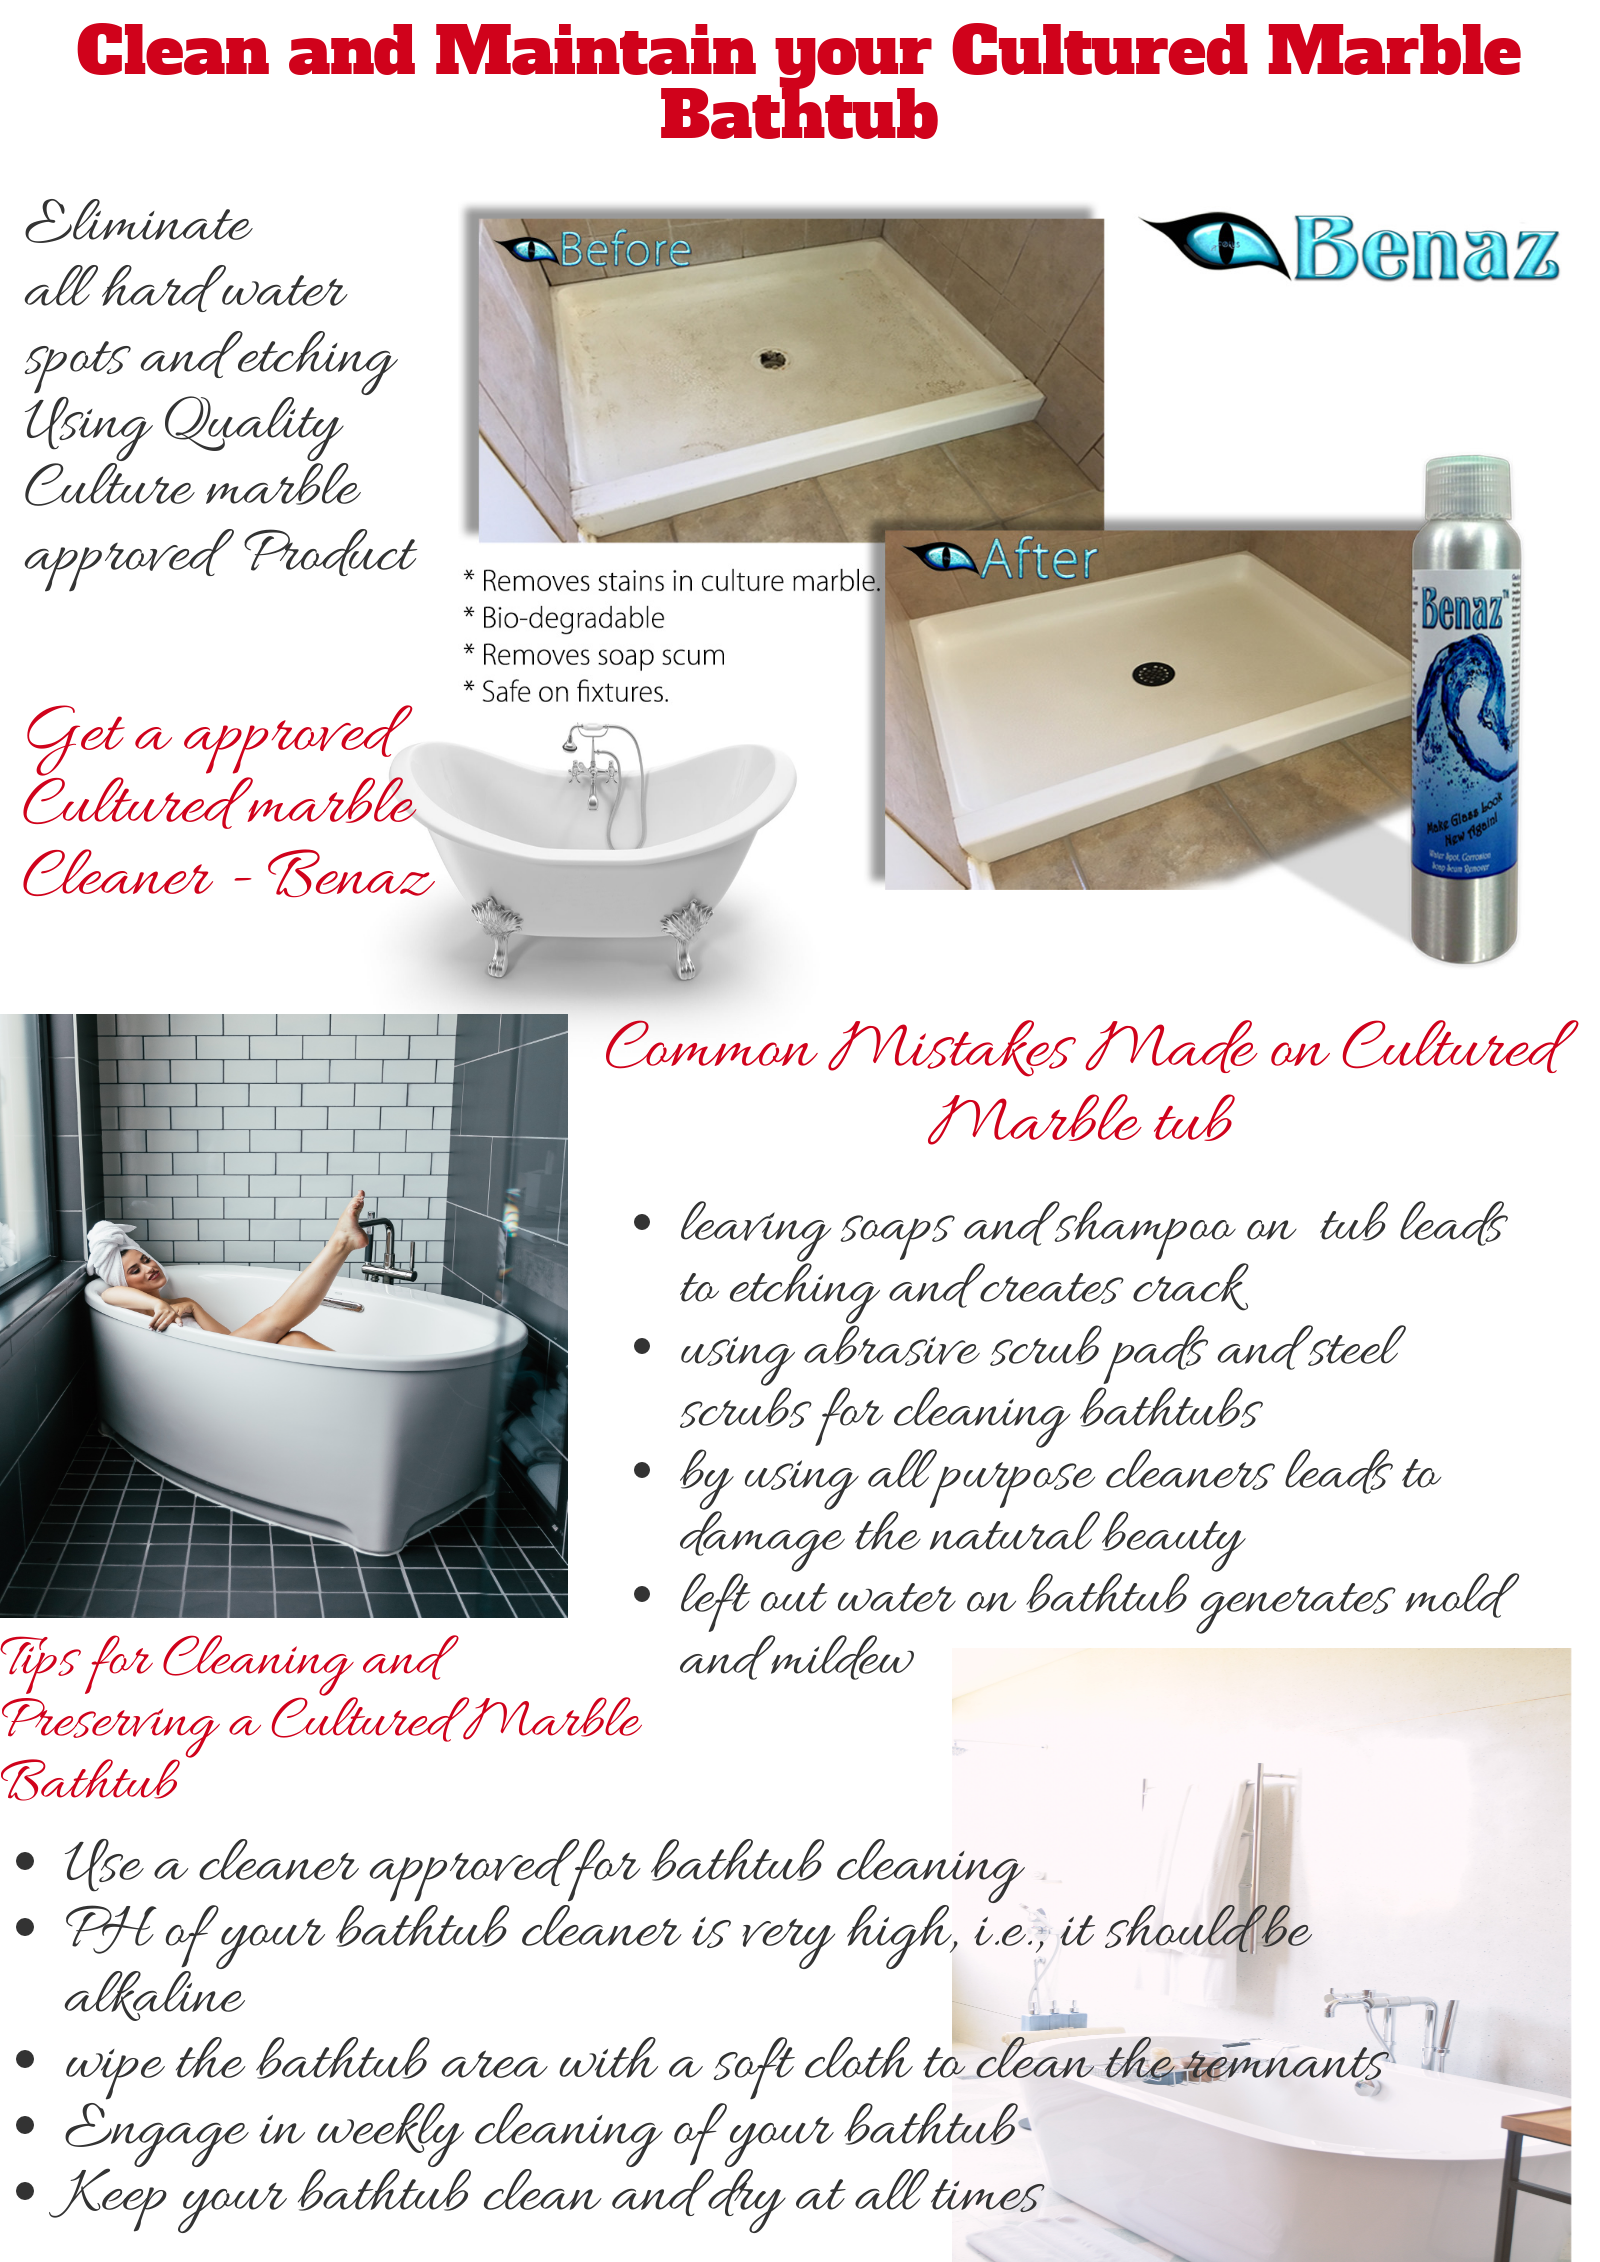 Best Bathtub Cleaning Tips To Maintain Your Cultured Marble Bathtub Bathtub Cleaning Tips Cultured Marble Marble Bathtub